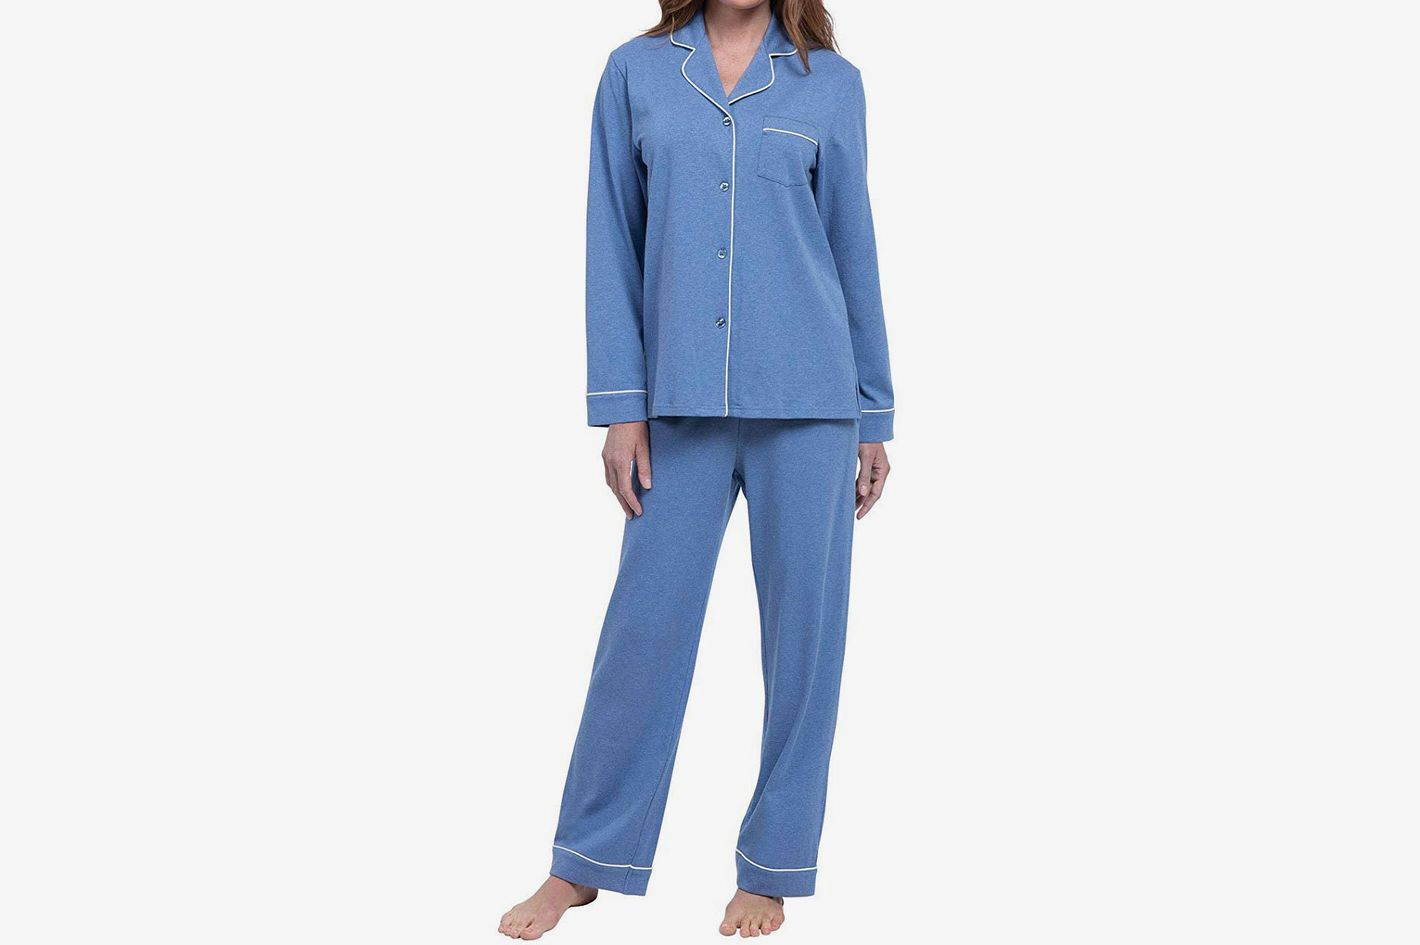 3f411fe9493 PajamaGram Pajamas for Women - Cotton Jersey Womens Pajamas